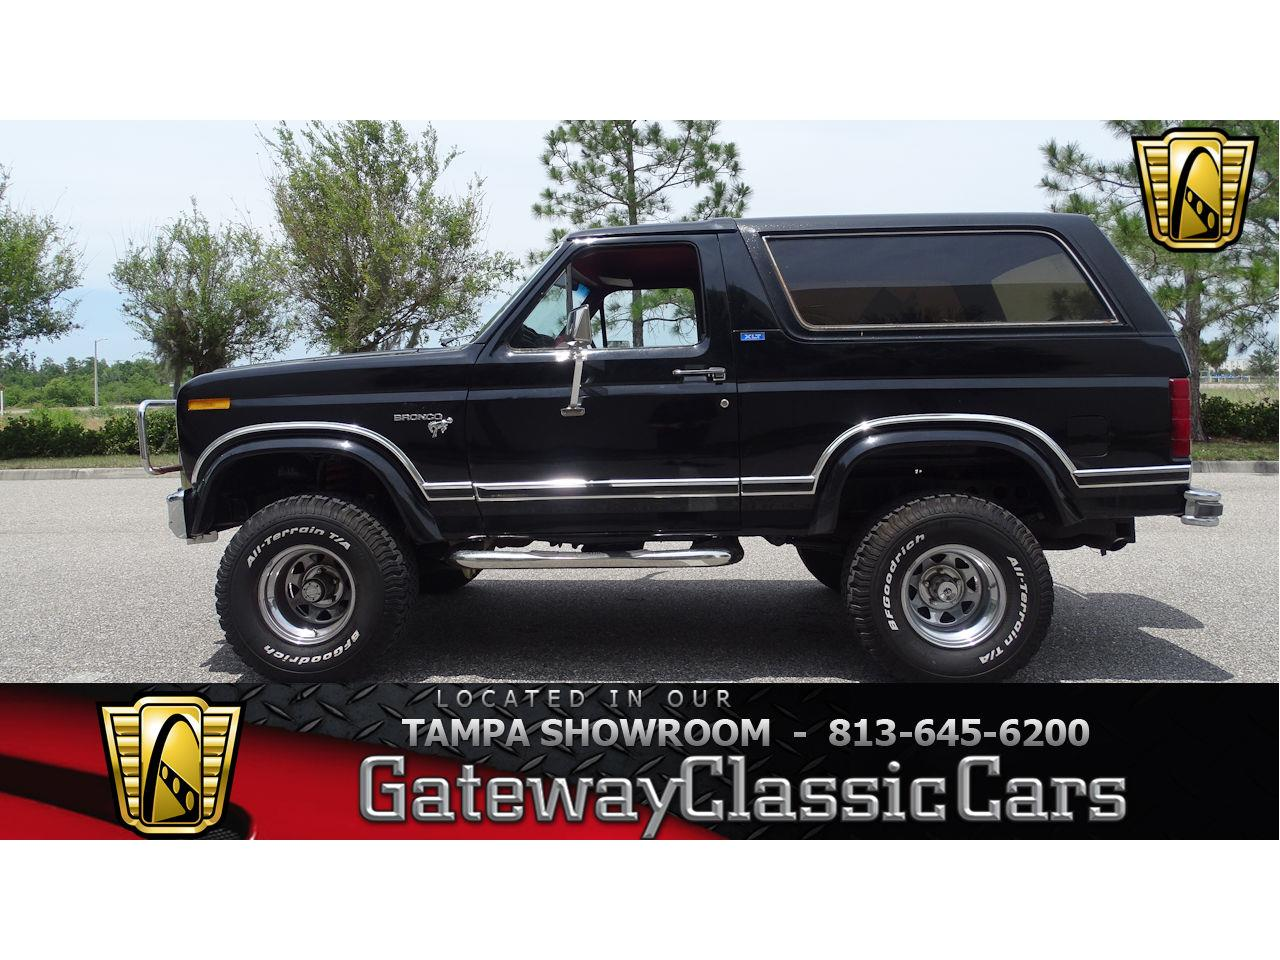 Large picture of 1980 ford bronco 15995 00 offered by gateway classic cars tampa